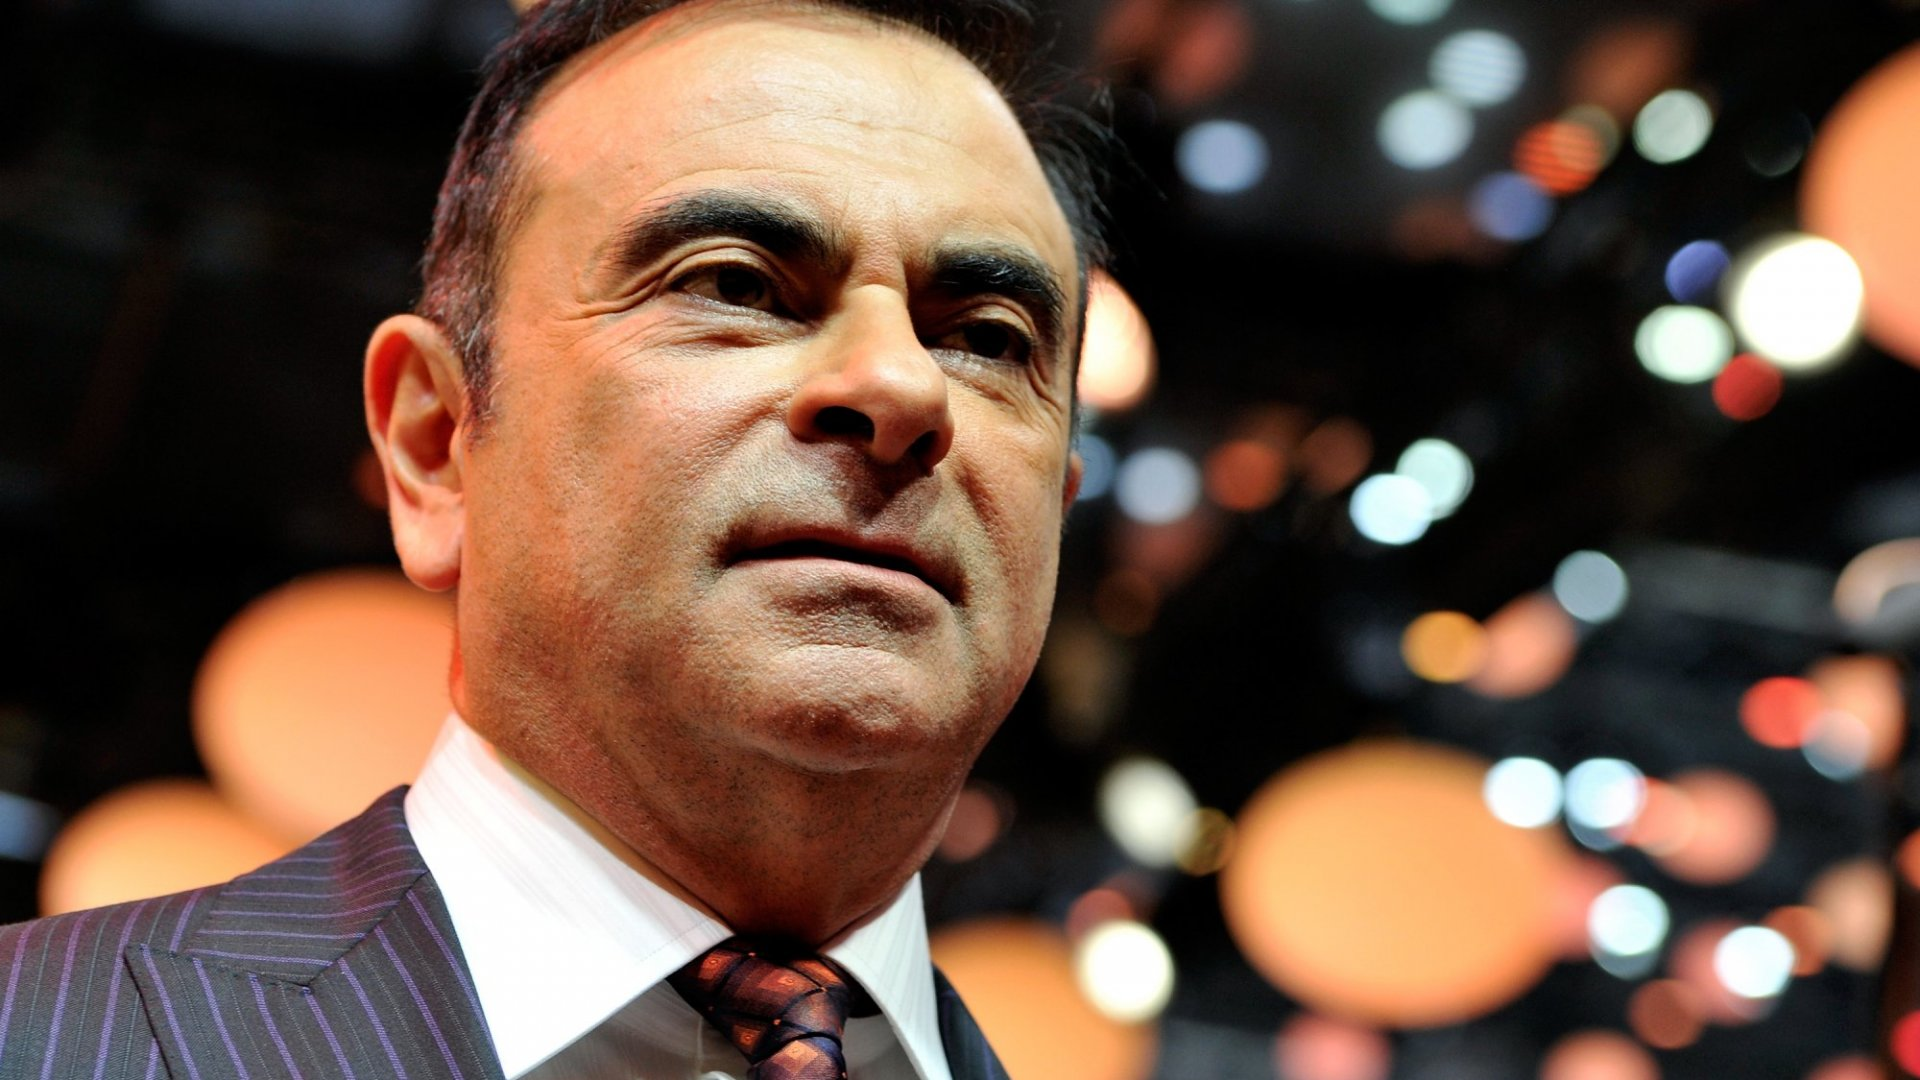 The 1 Thing You Need to Be An Effective Global Leader, According to Carlos Ghosn